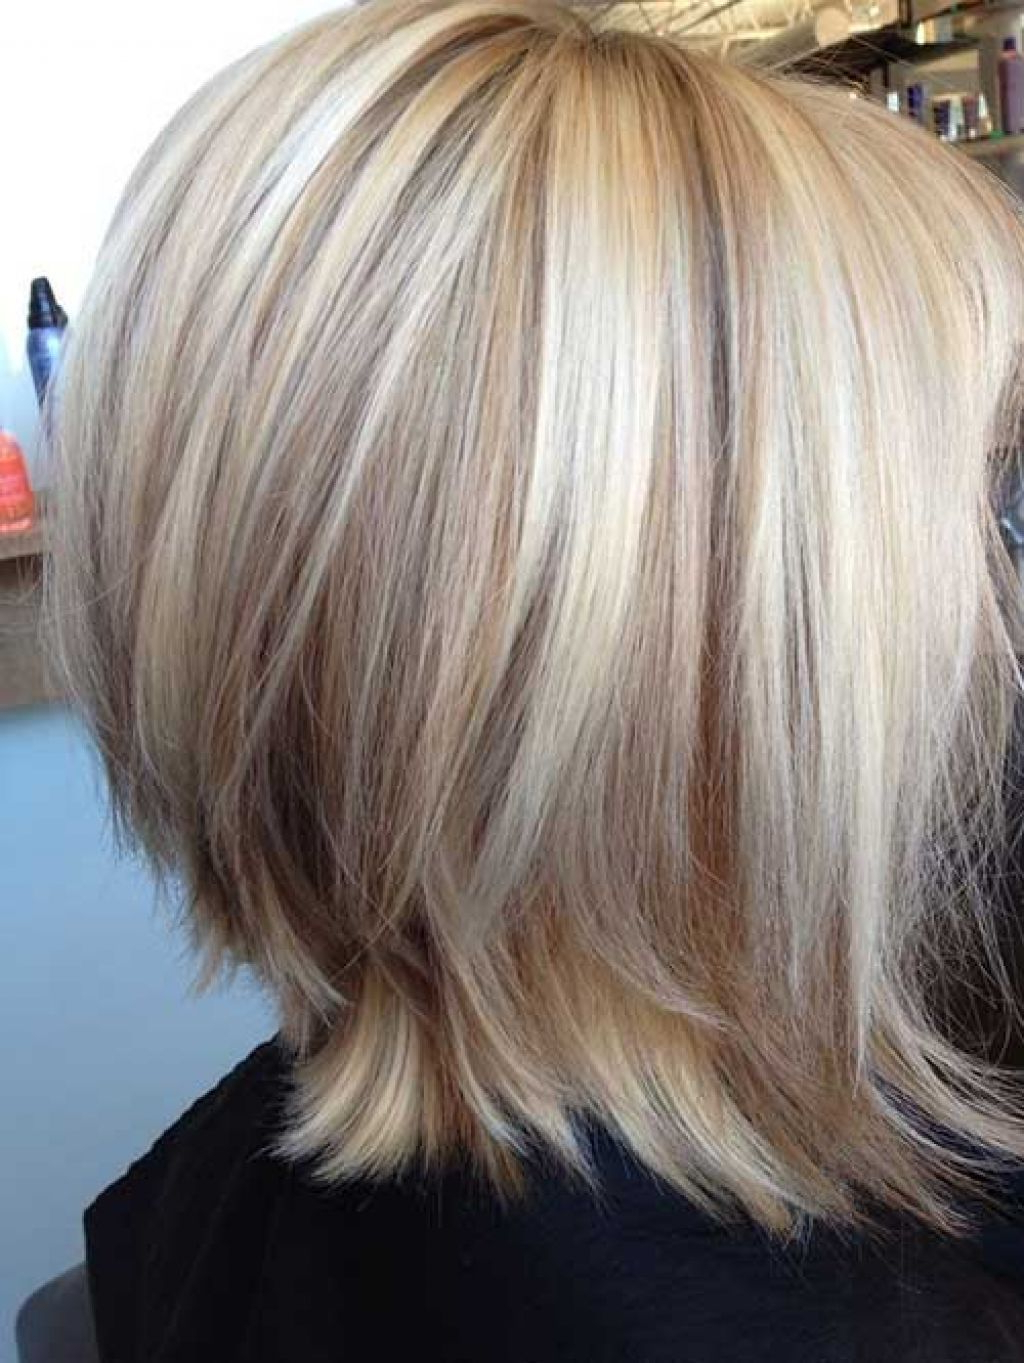 Hairstyles Throughout Recent Inverted Bob Medium Haircuts (View 1 of 20)